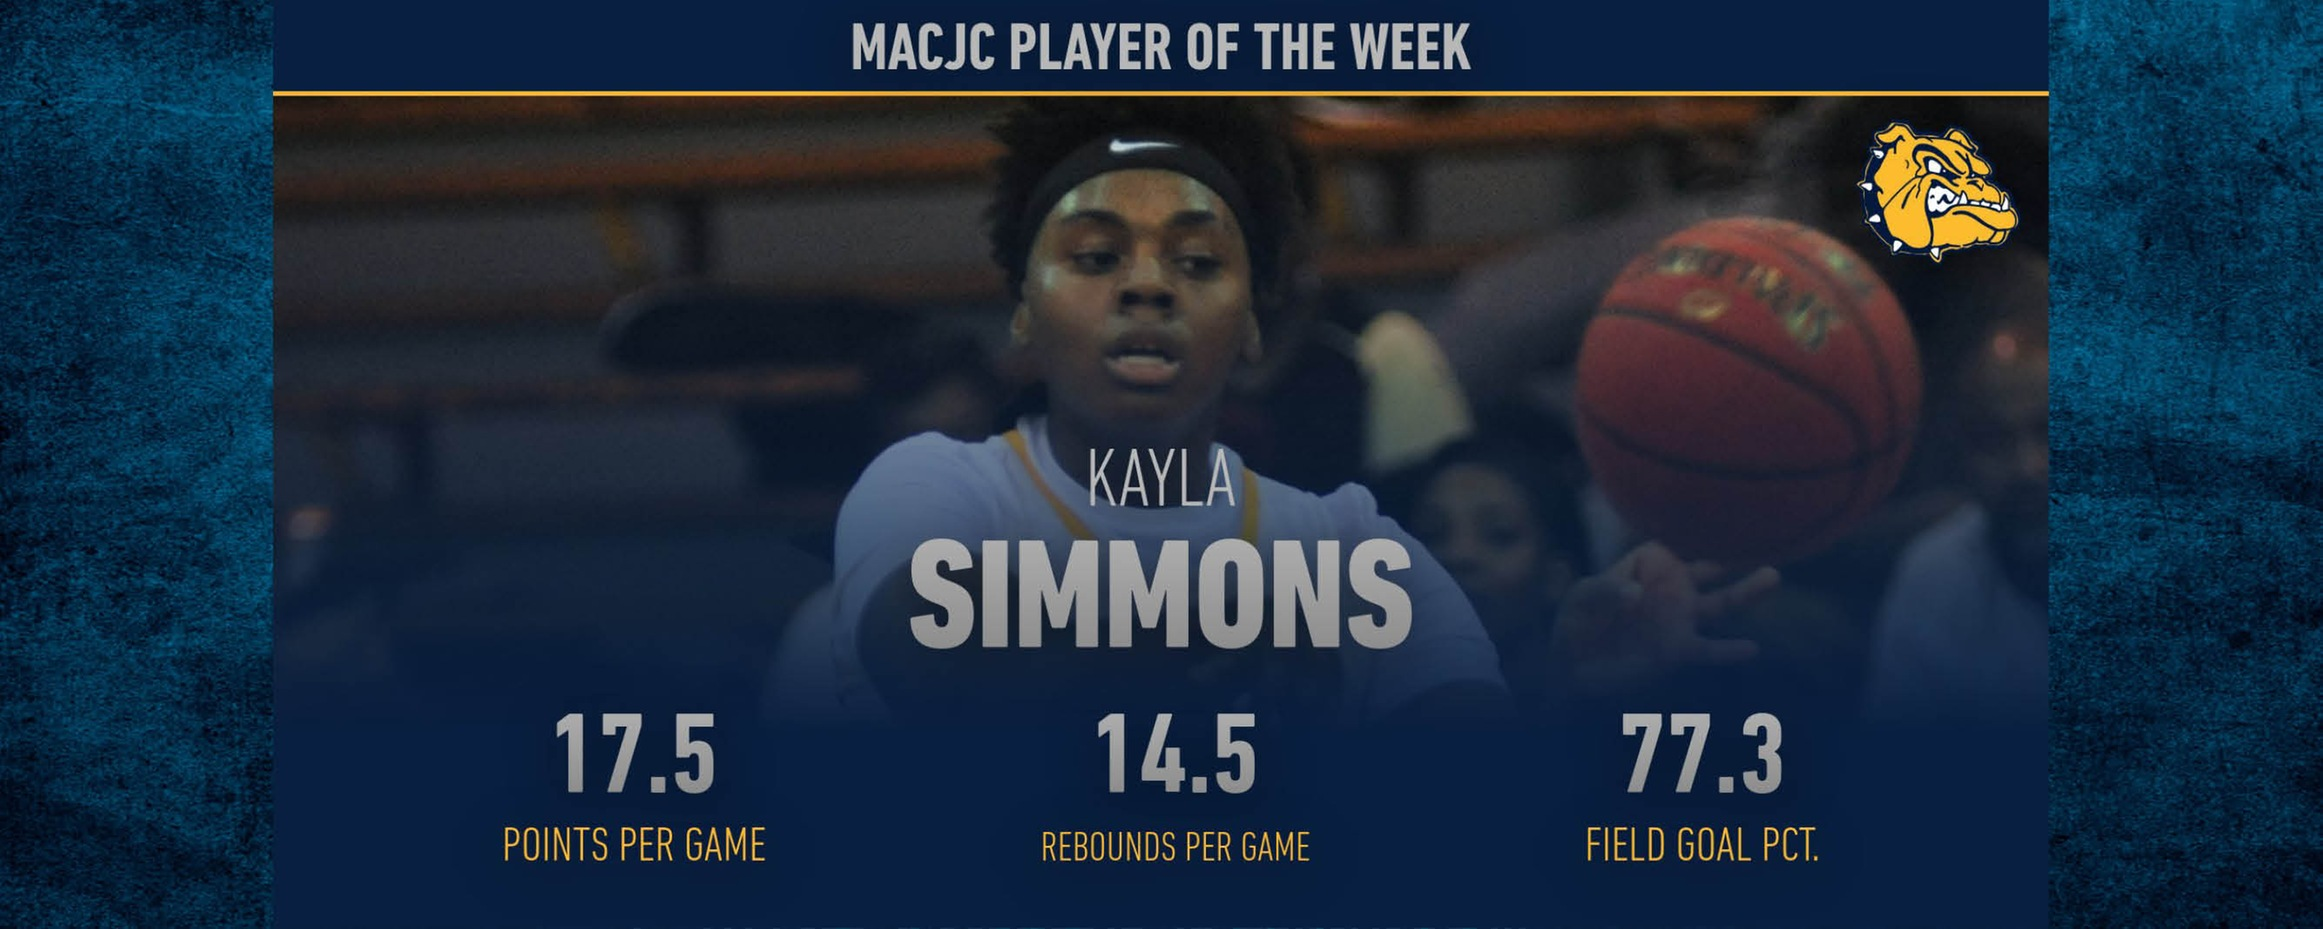 Simmons named MACJC Player of the Week